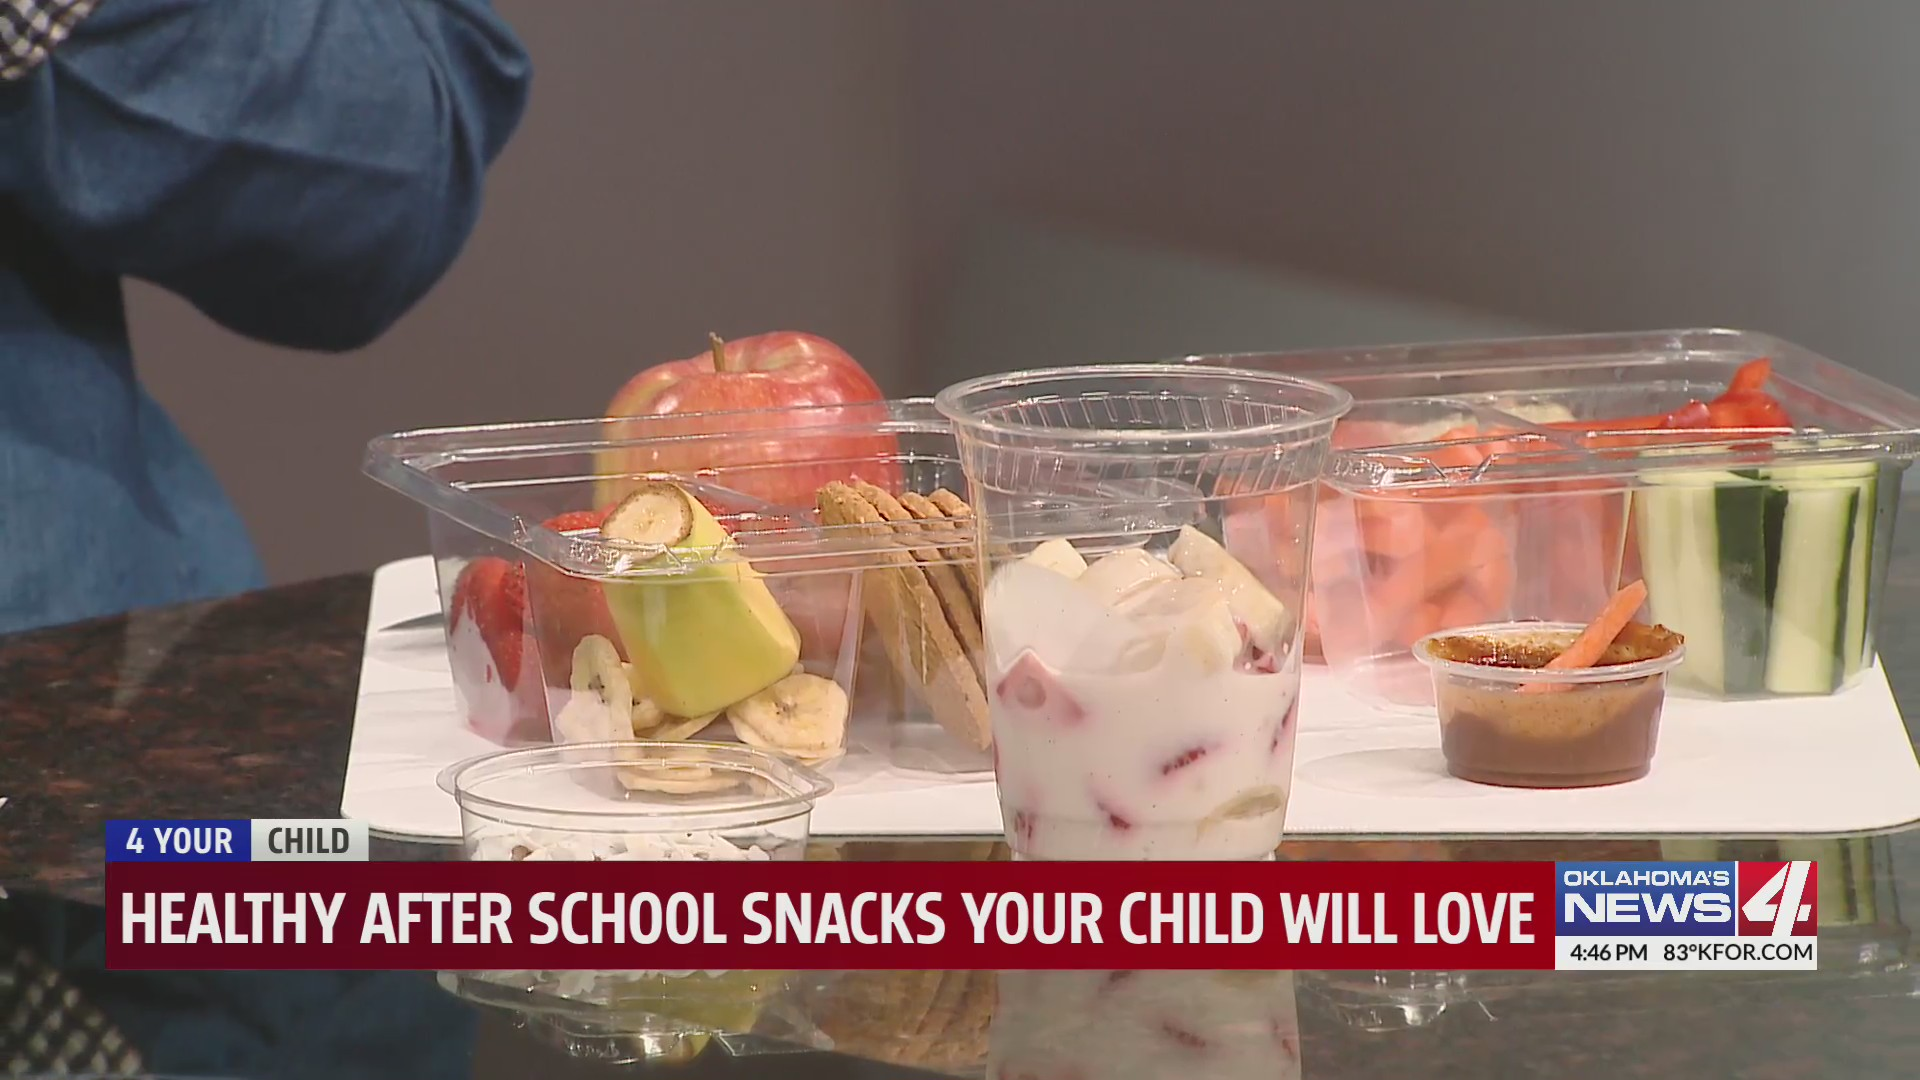 Healthy after-school snacks 4 your student